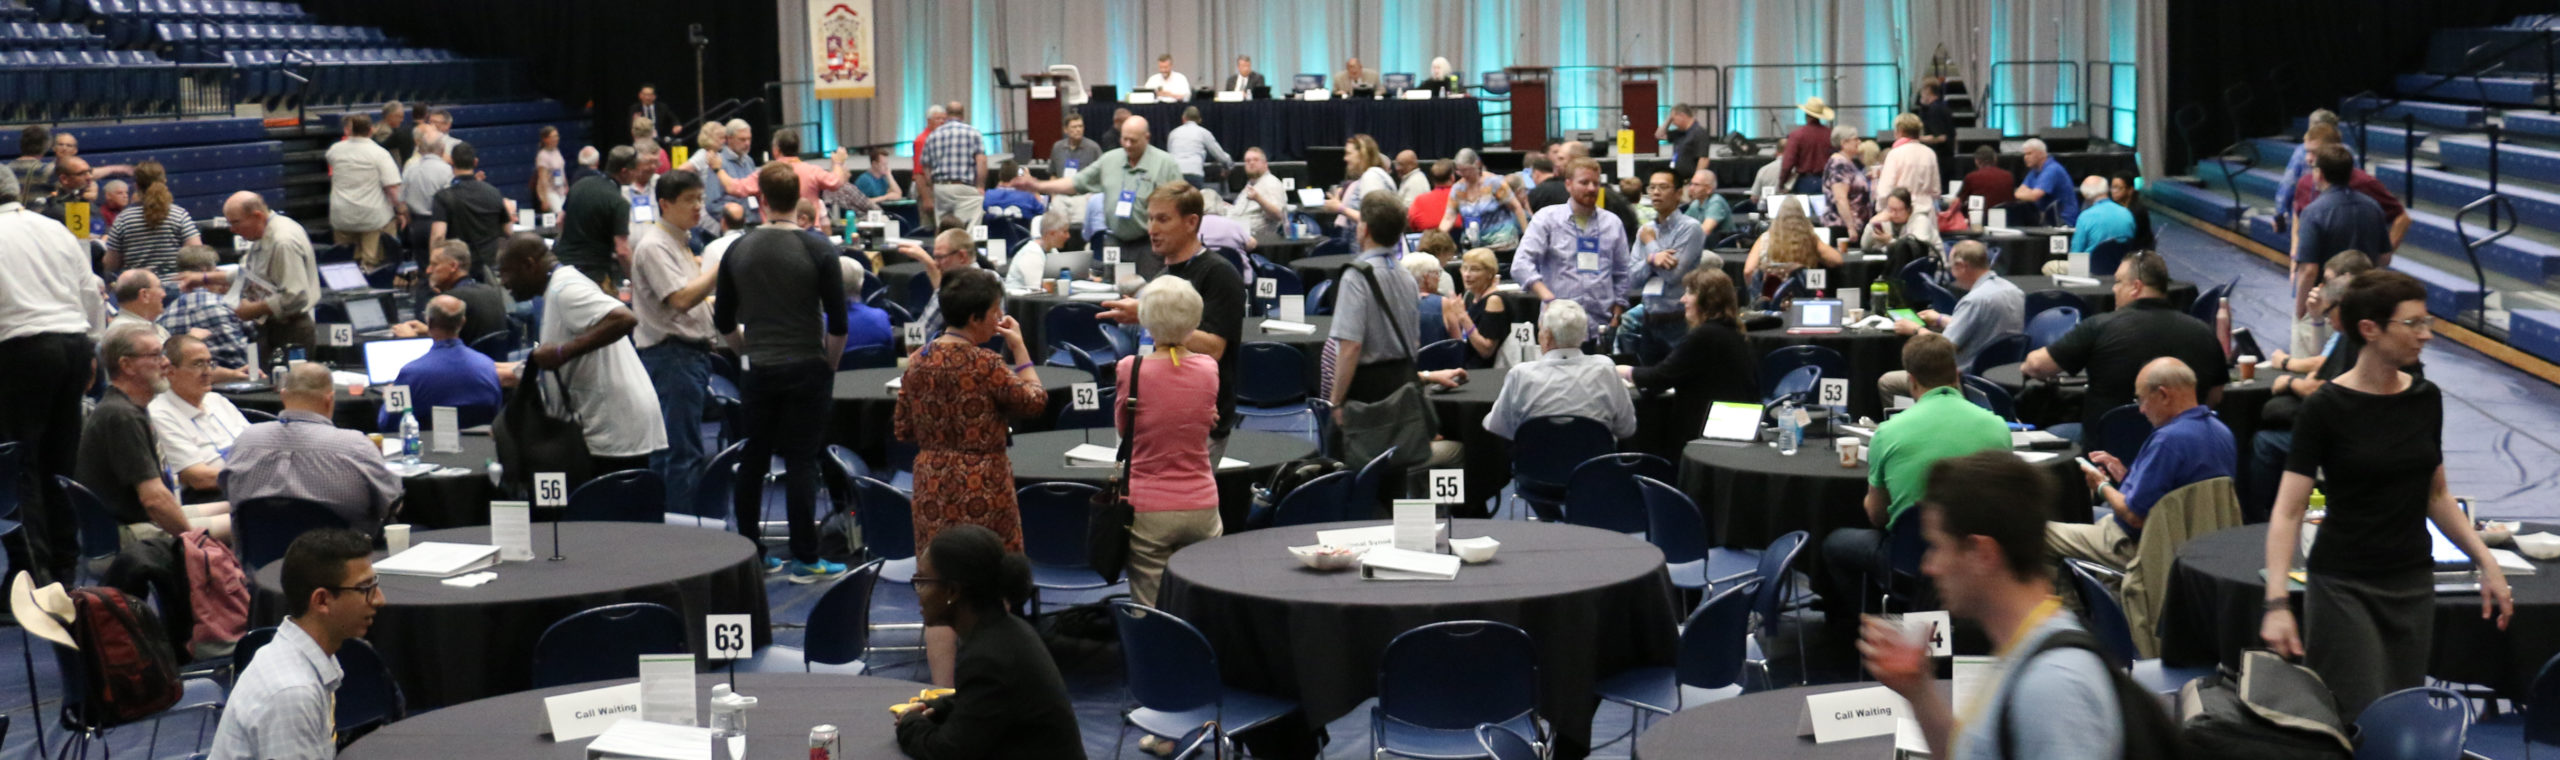 GSC Calls Off Special Session of General Synod in October